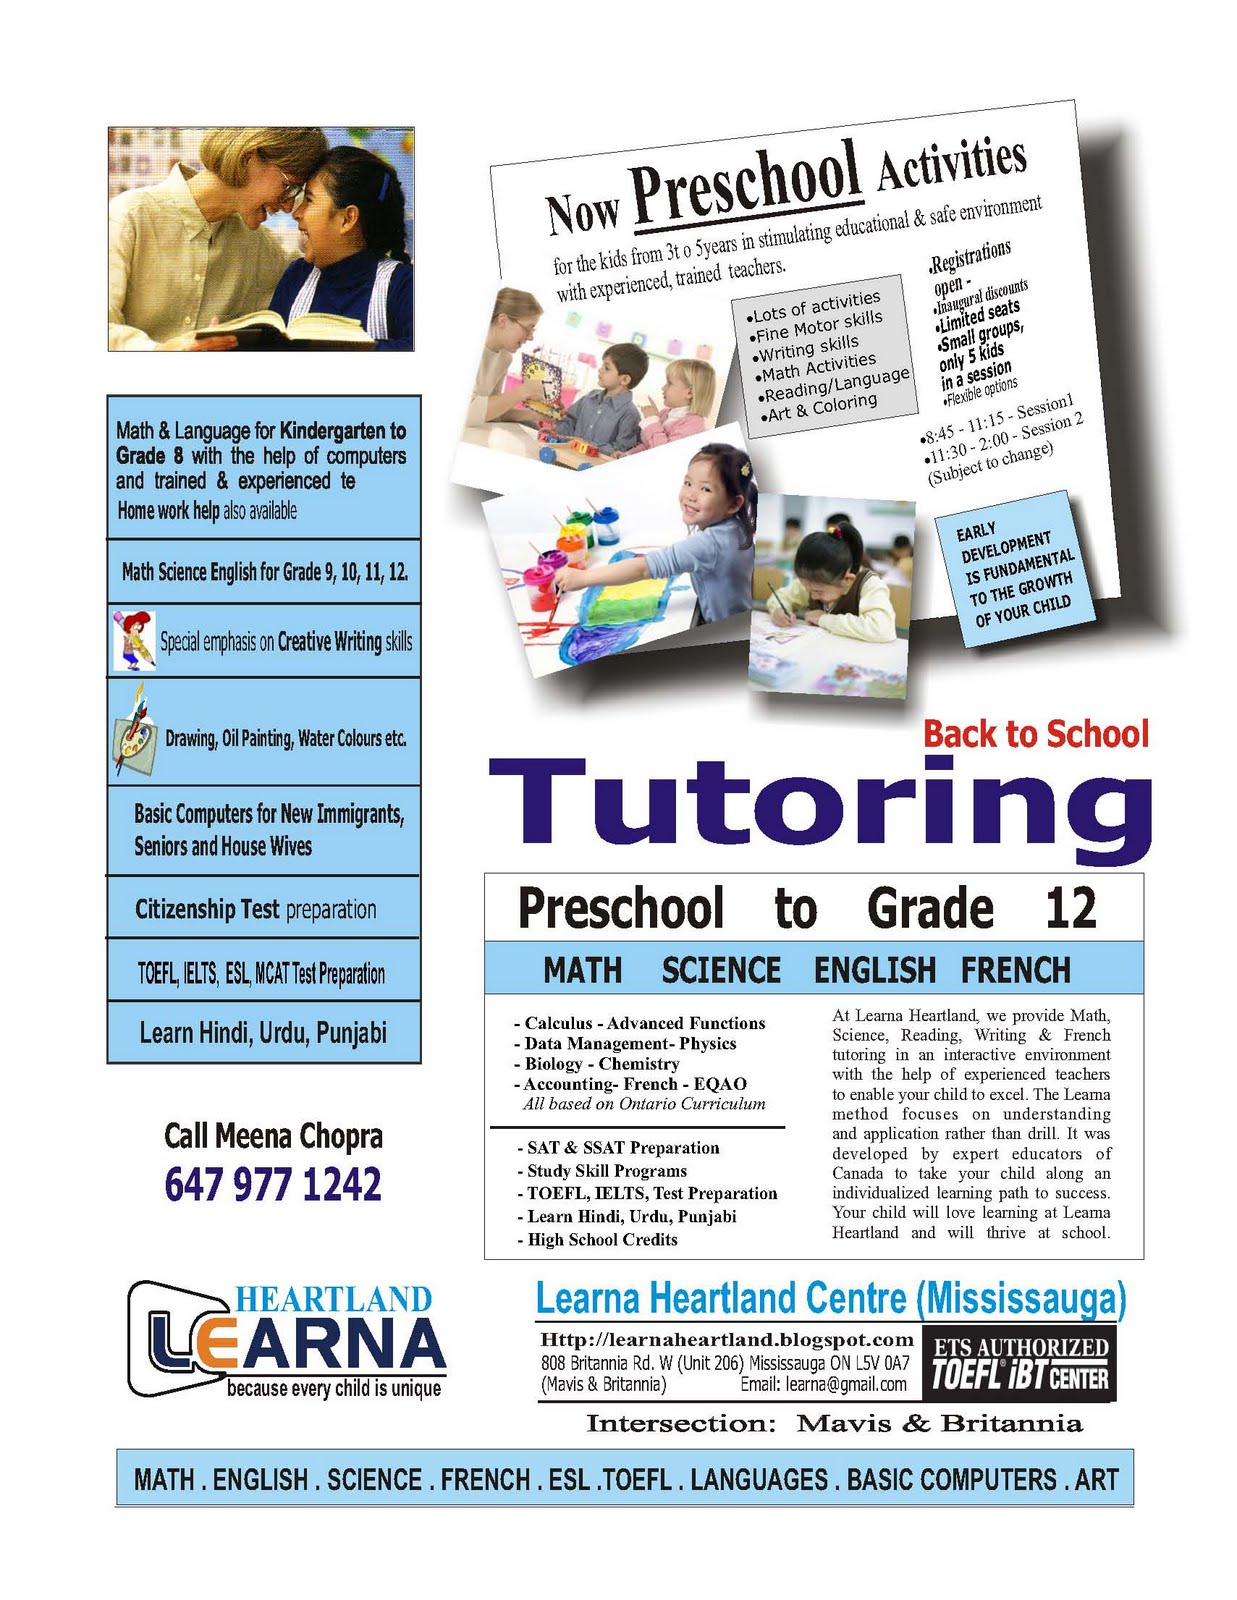 LEARNA HEARTLAND (Mississauga) - TUTORING: Join now for